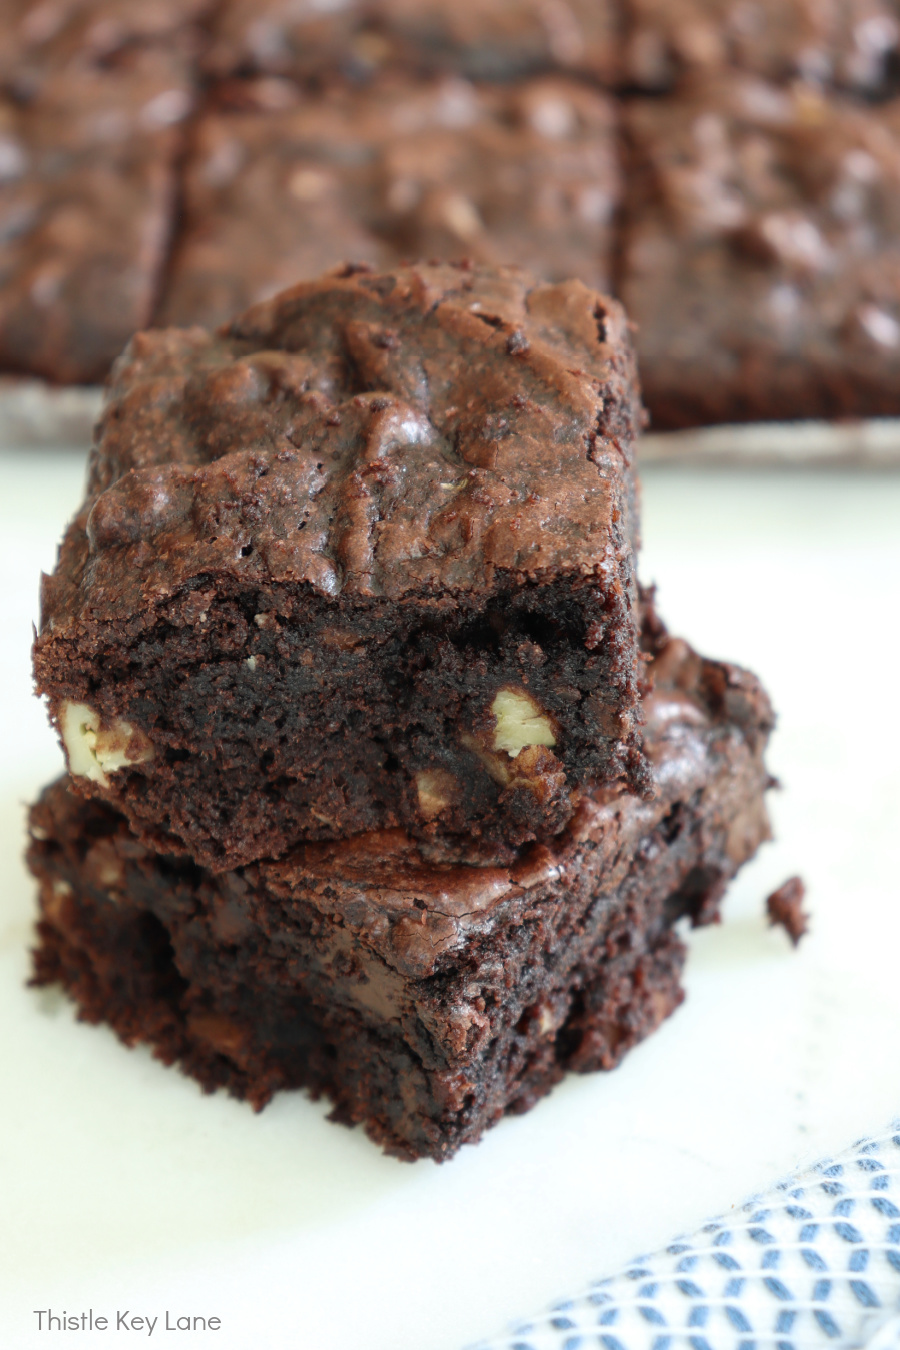 View of the flaky crust on a stack of brownies.